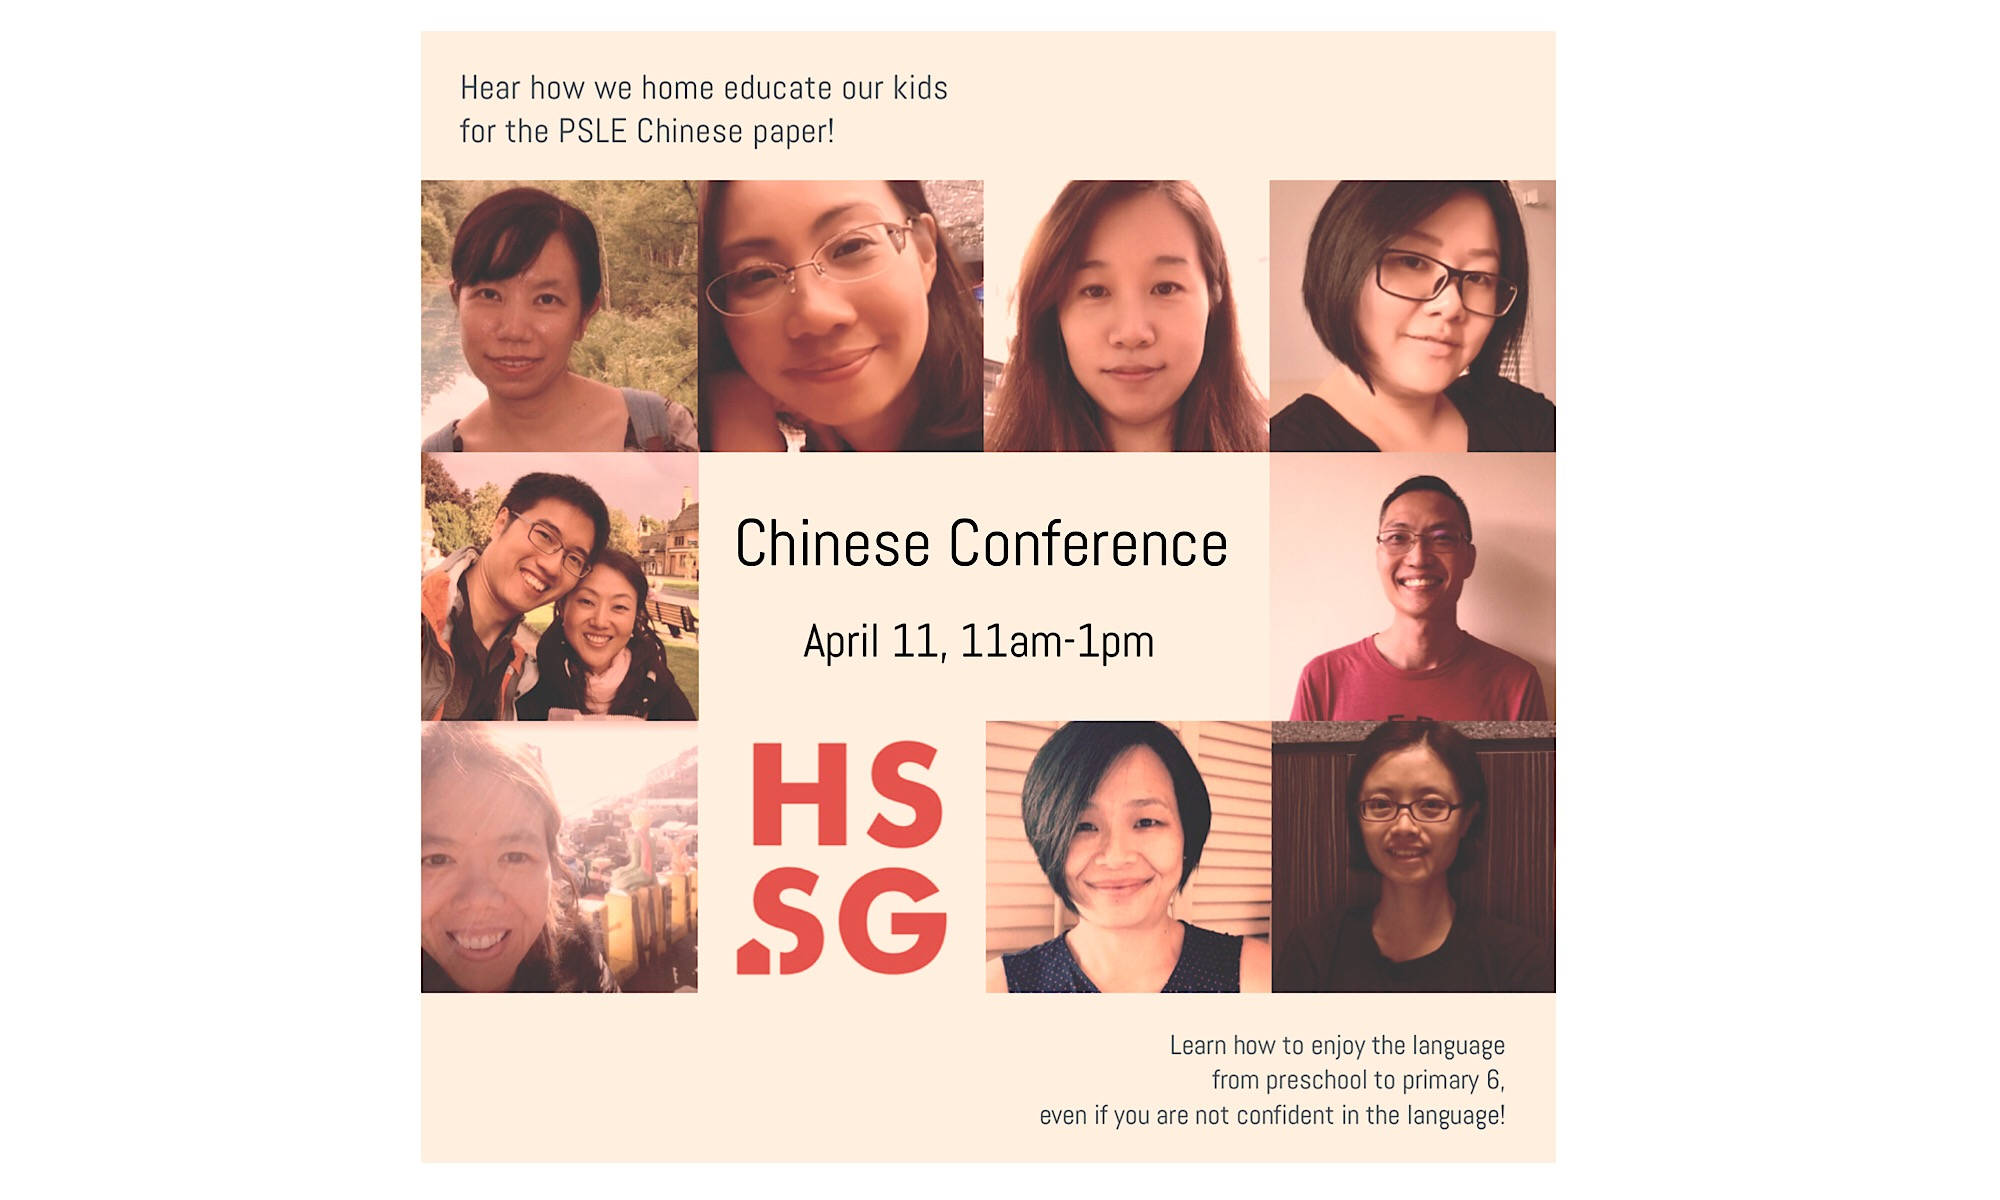 Have you signed up for the Chinese Conference?